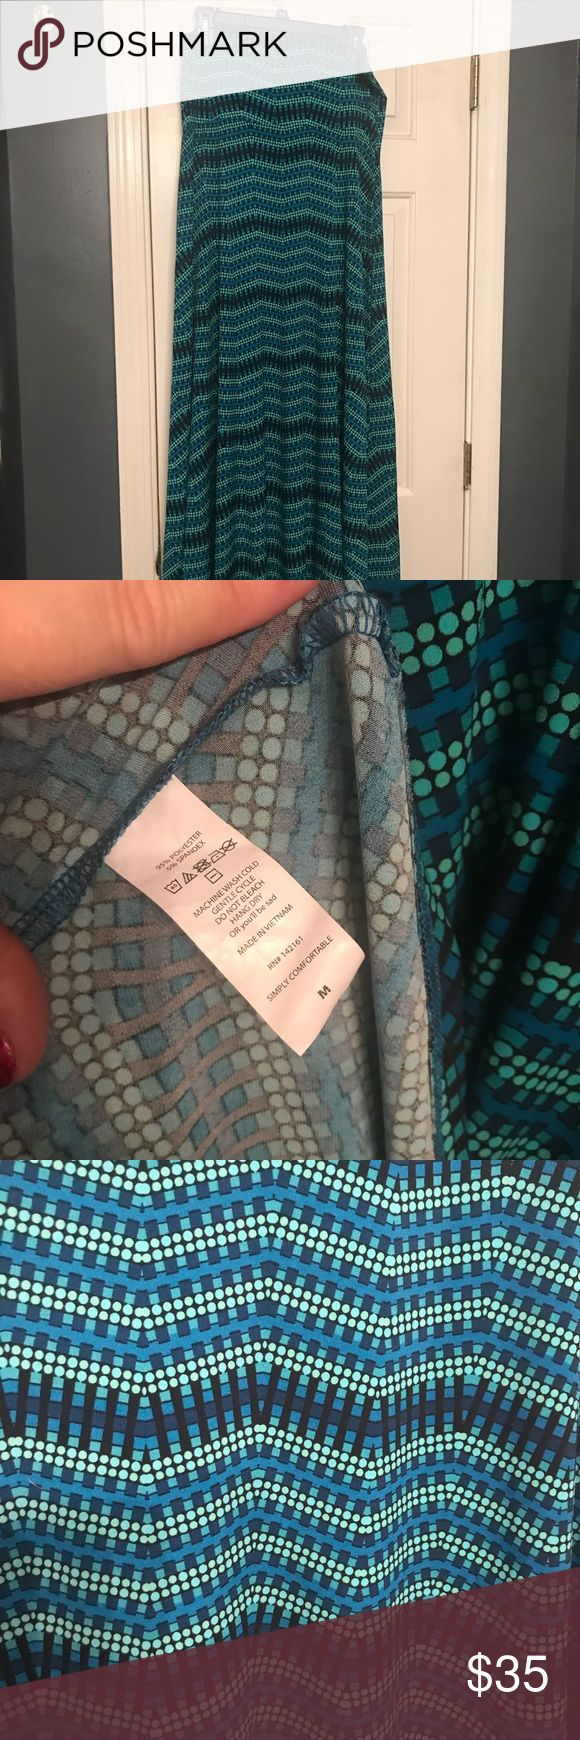 NWOT Women's Lularoe Maxi Skirt 🏖 🏖NWOT Women's Lularoe Maxi Skirt 🏖 🏝95% Polyester | 🏝 5% Spandex Just in time for spring & beach weather! Aquas, blues & greens in a beautiful pattern 🏝Can also be worn as a halter dress or oversized scarf!  Please refer to LLR's size chart M (10-12) This is stretchy & you can size down @least one! 📦 All packages are wrapped and shipped with 💕 LuLaRoe Skirts Maxi